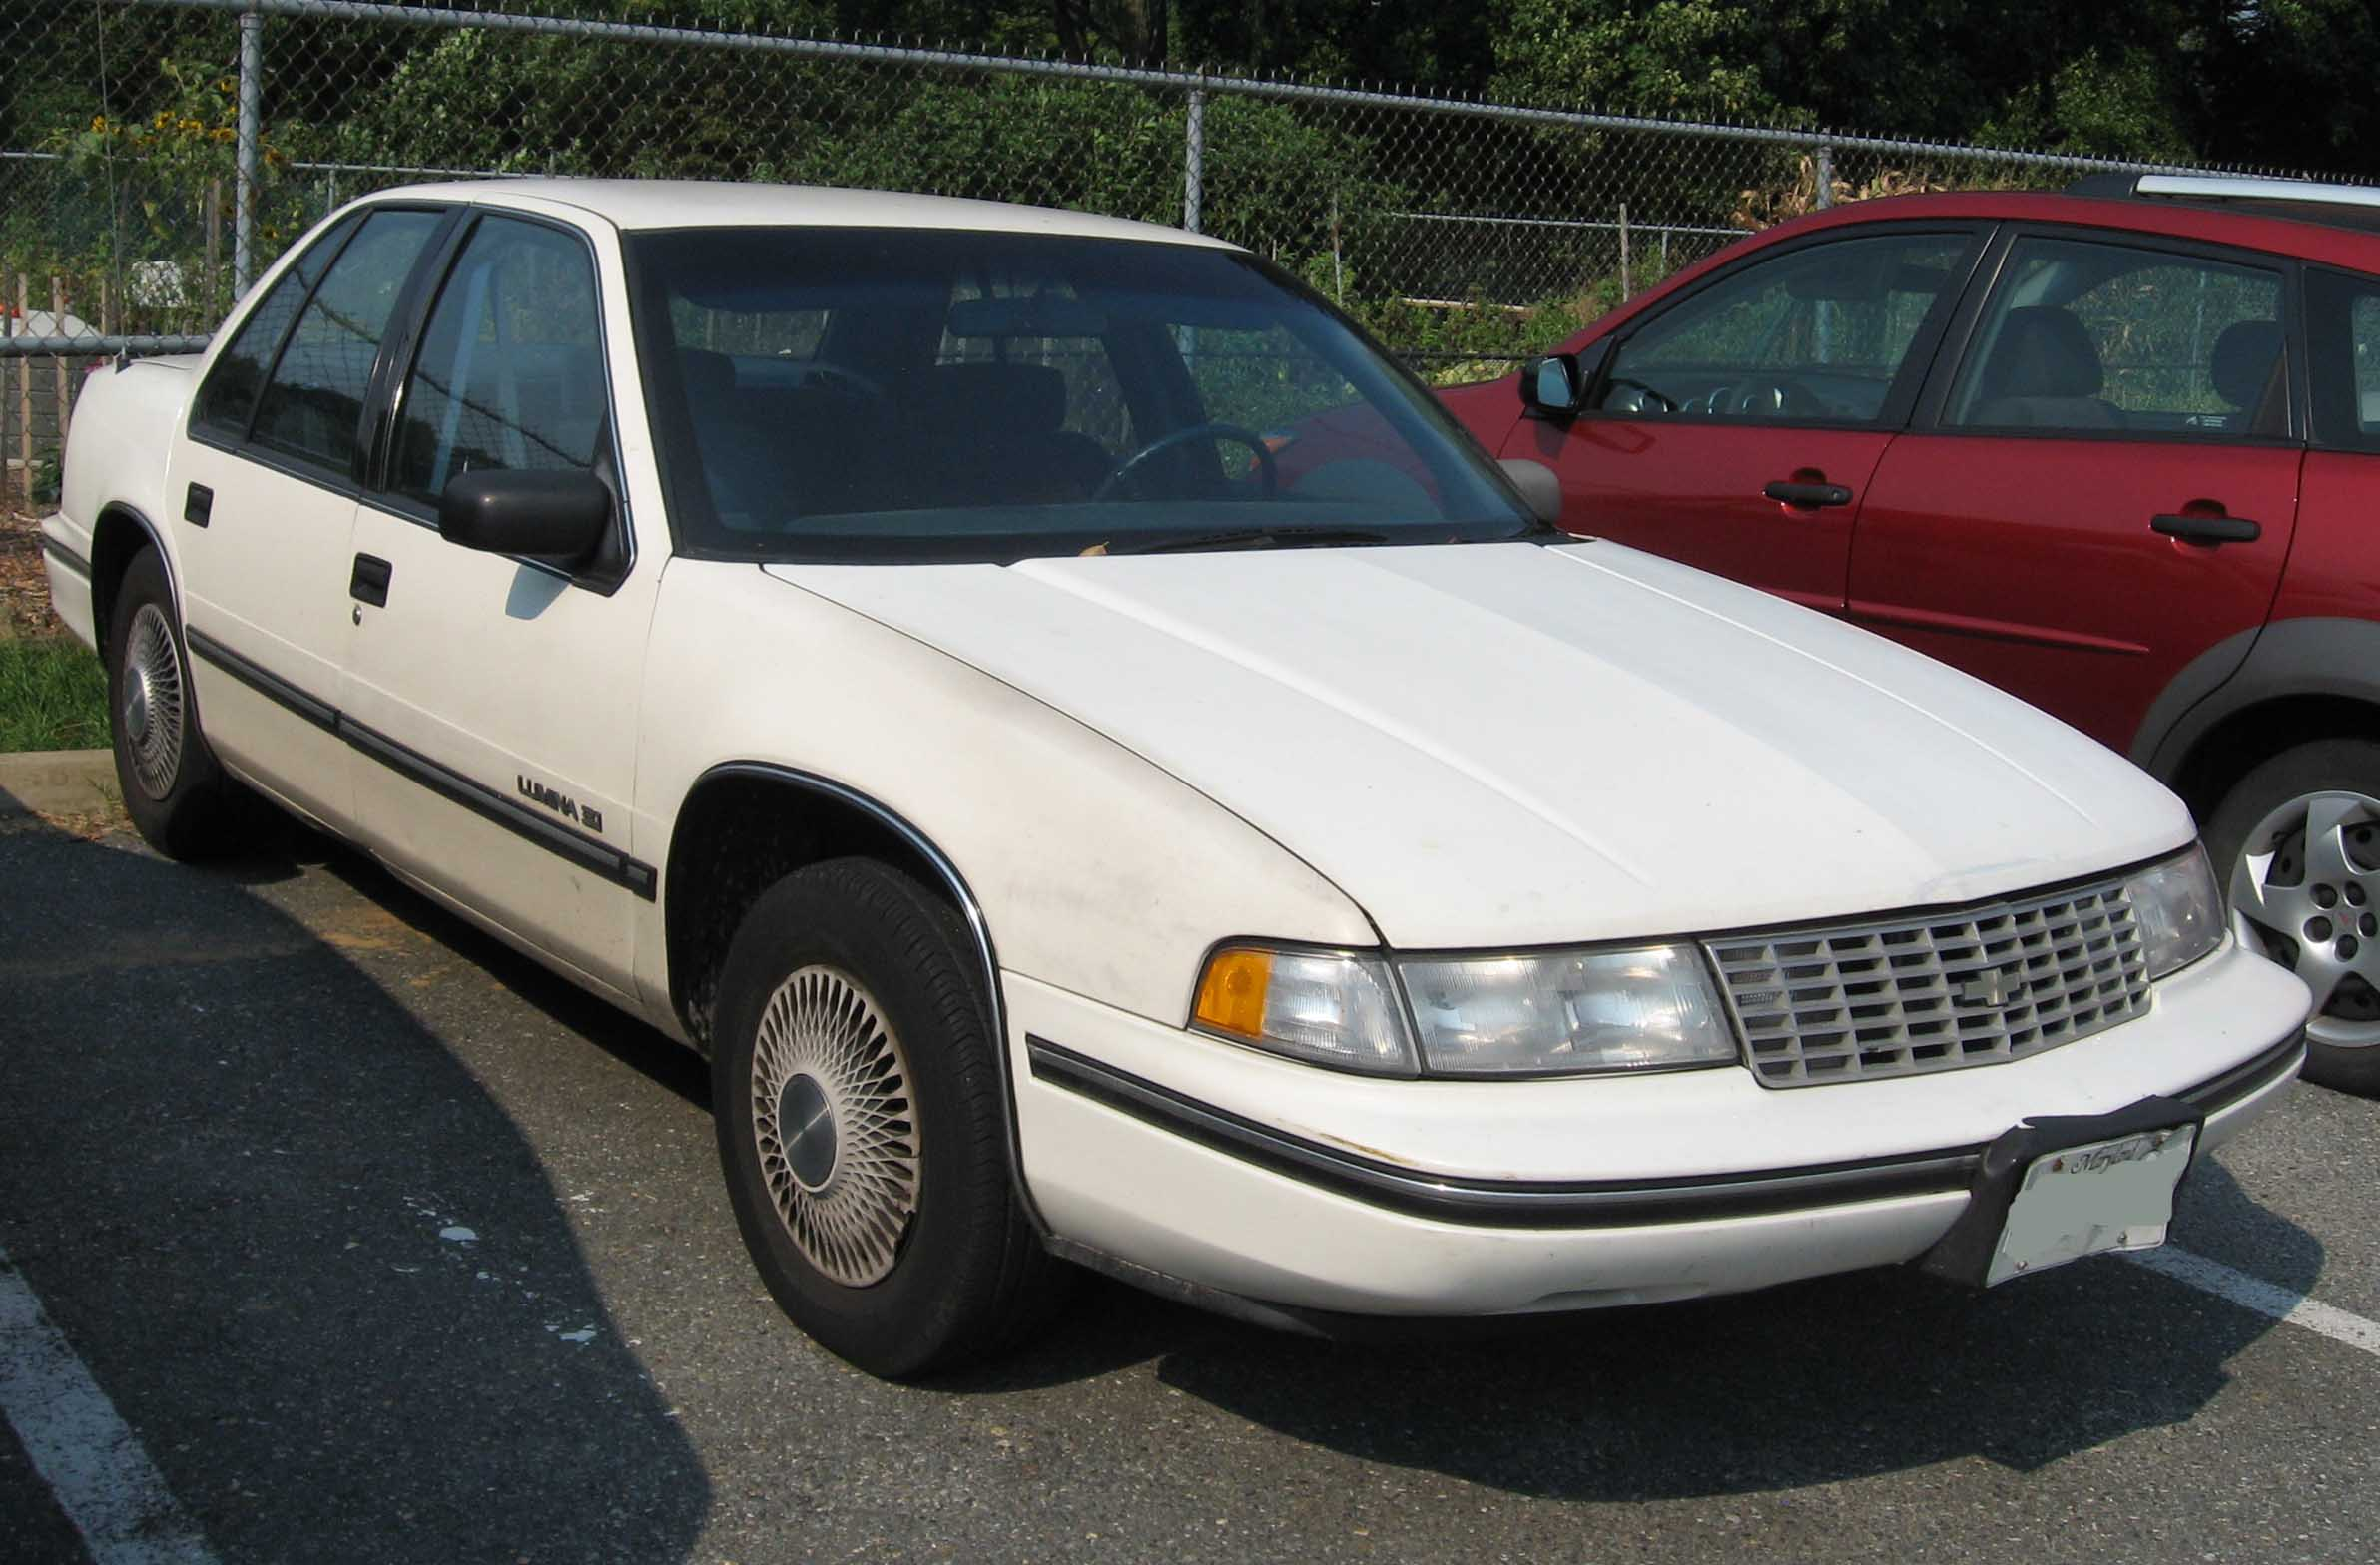 Chevrolet Lumina photo 11